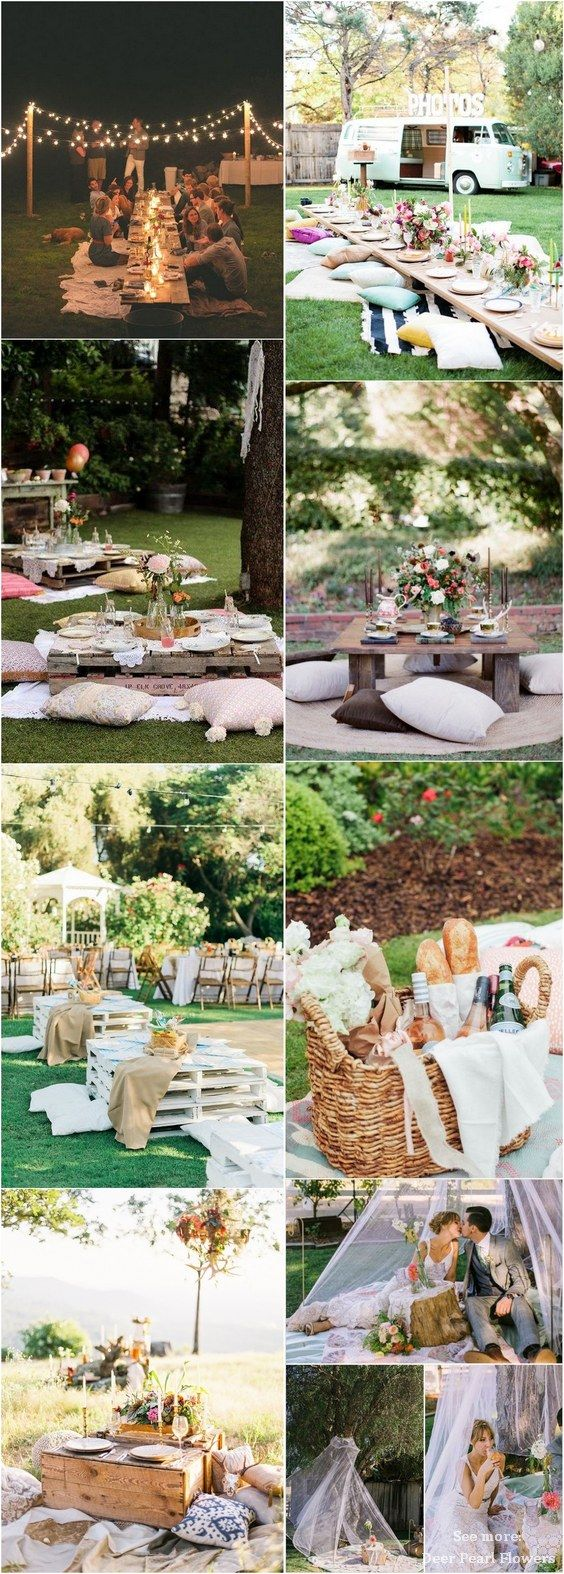 218 best Outdoor Weddings images on Pinterest | Country weddings ...